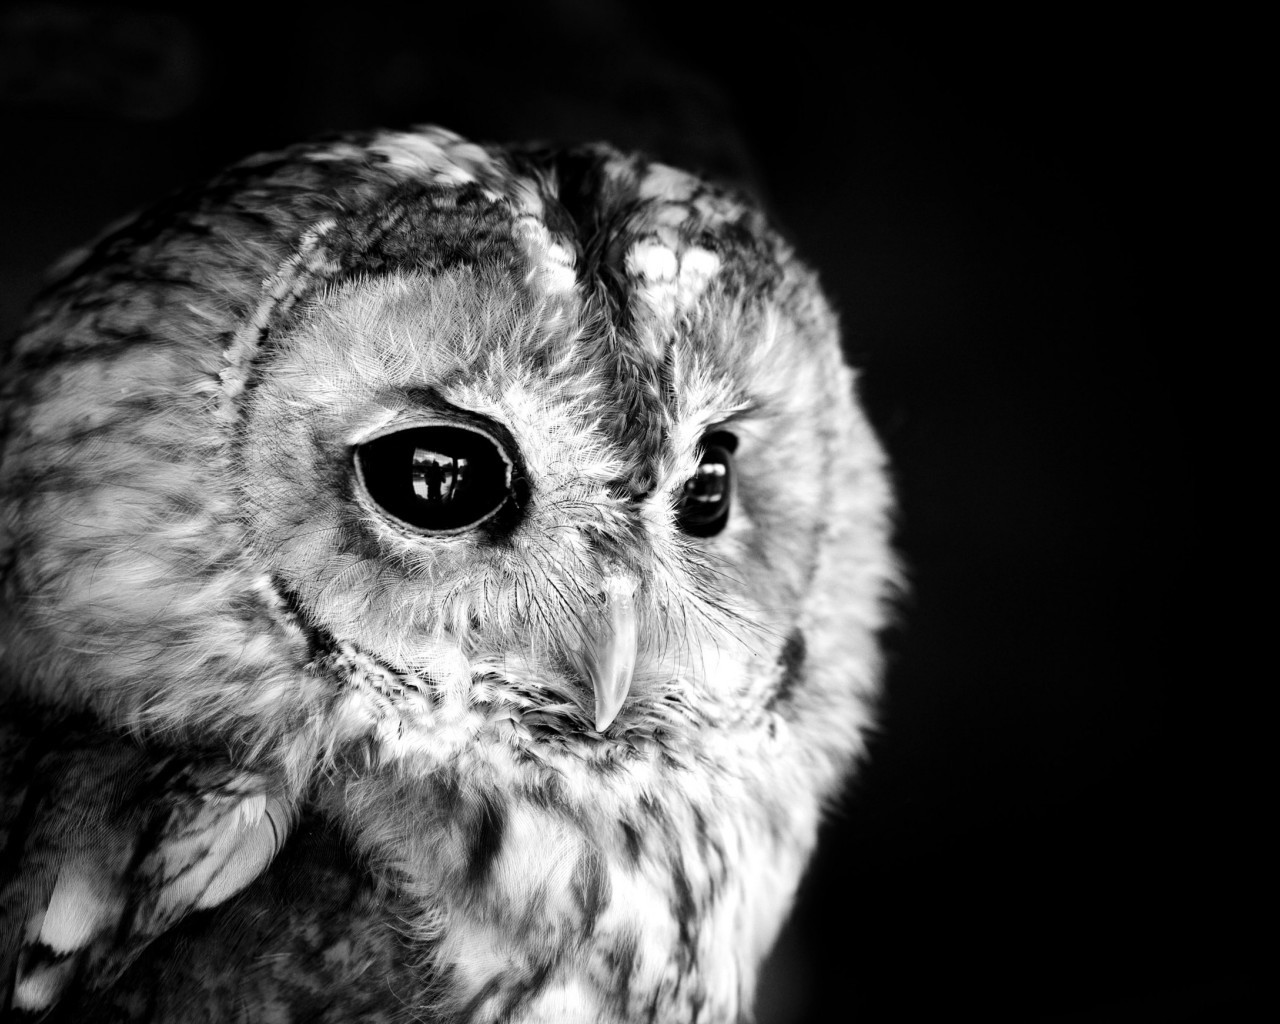 21078 download wallpaper Animals, Birds, Owl screensavers and pictures for free